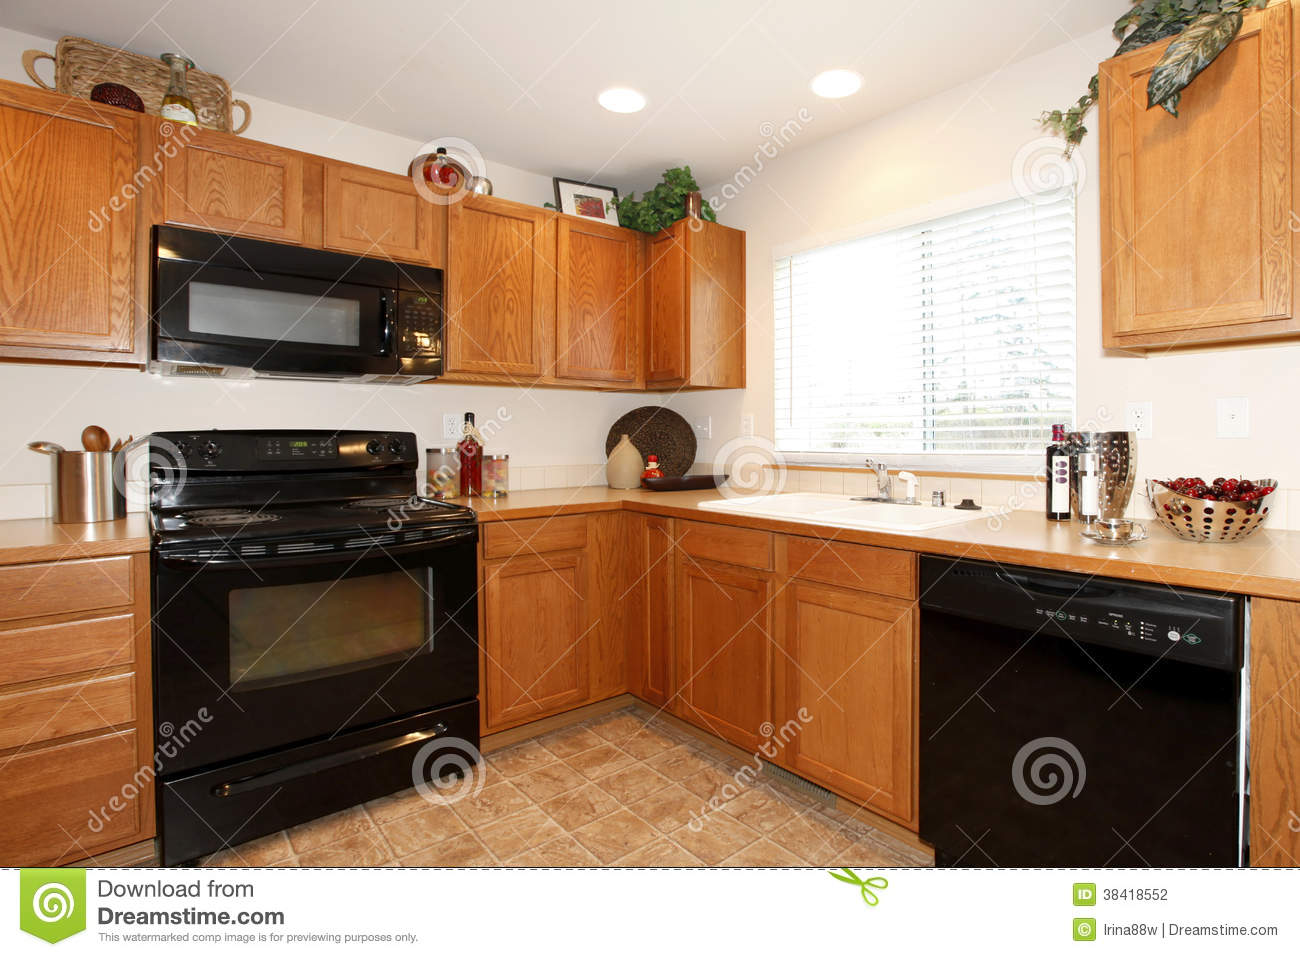 Brown kitchen cabinets with black appliances stock photo for Black and brown kitchen cabinets